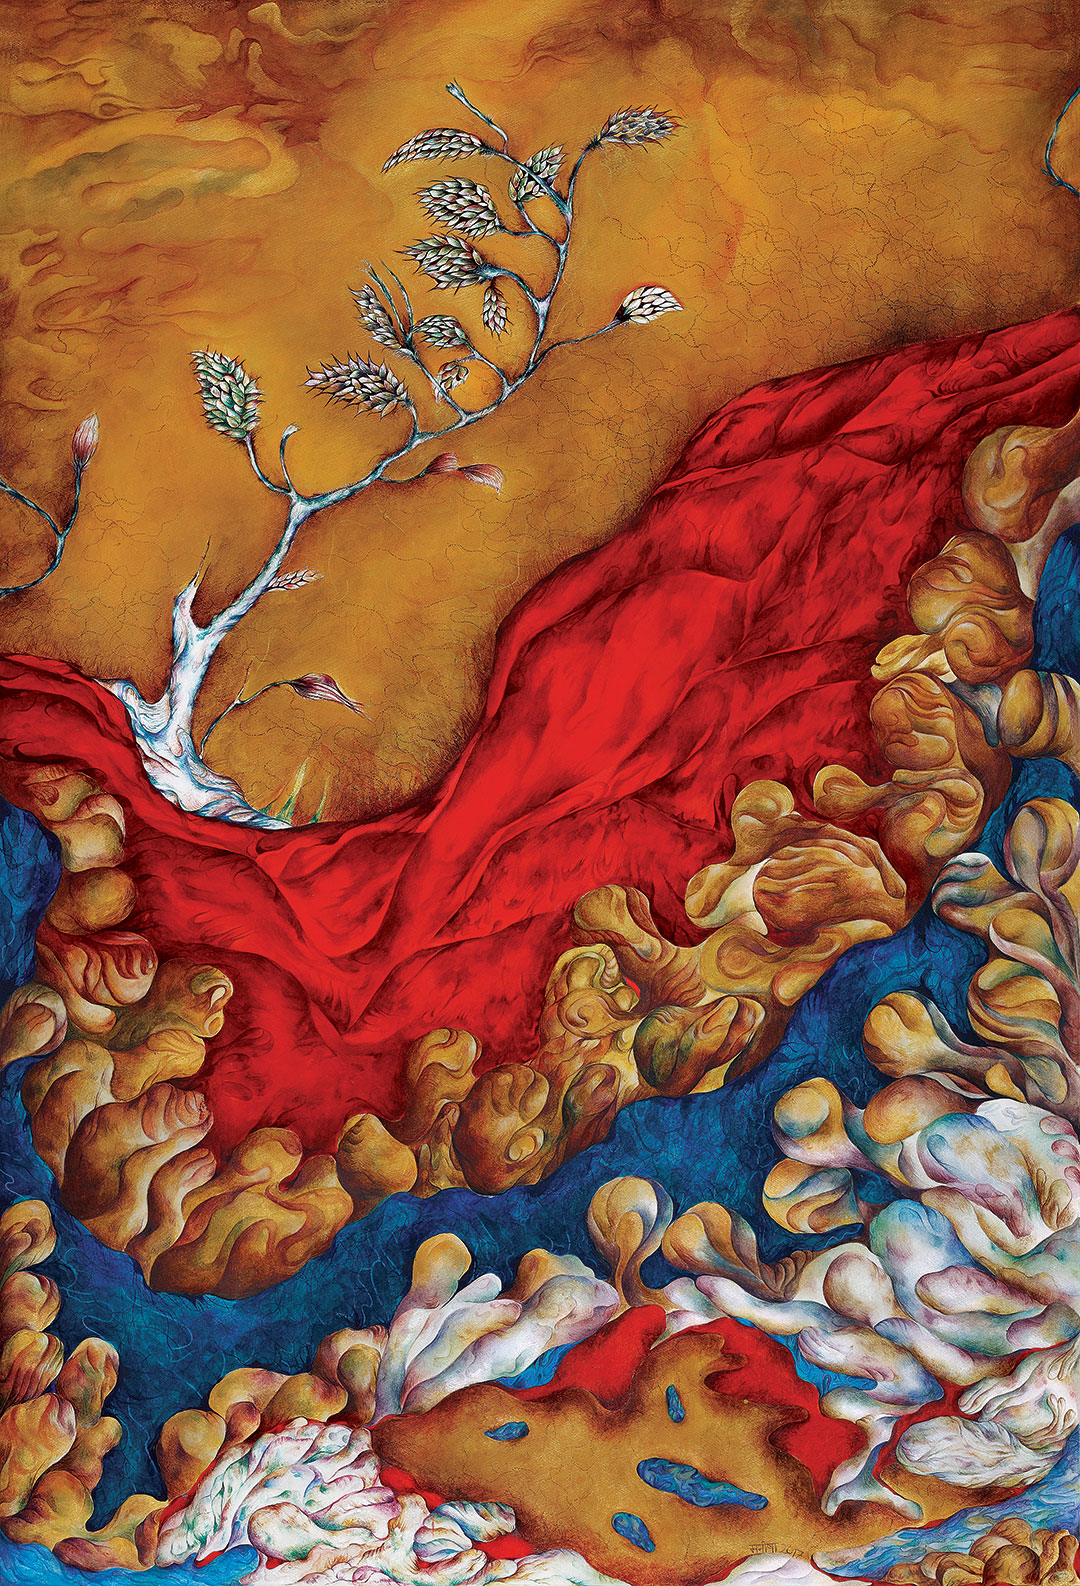 TAPESTRY OF HOPE WOVEN